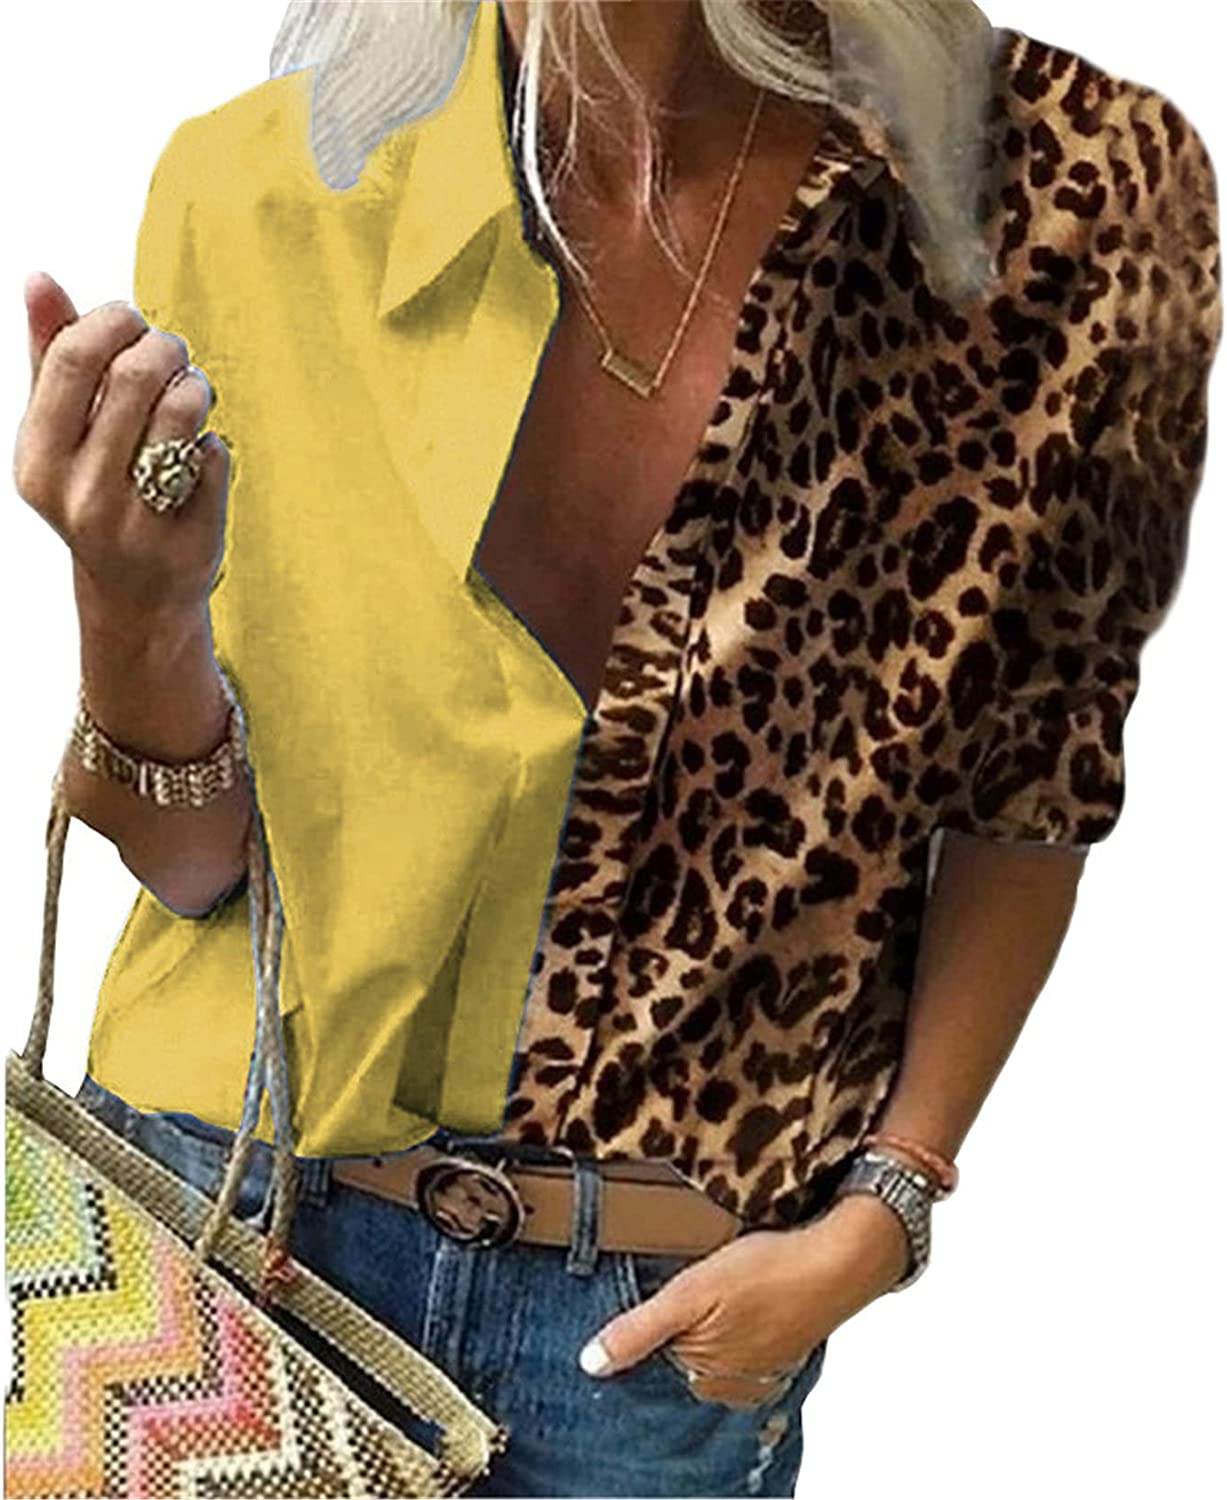 Andongnywell Women's Leopard Print Button Down Shirts Sleeve Tops V Neck Casual Work Blouses Tunics